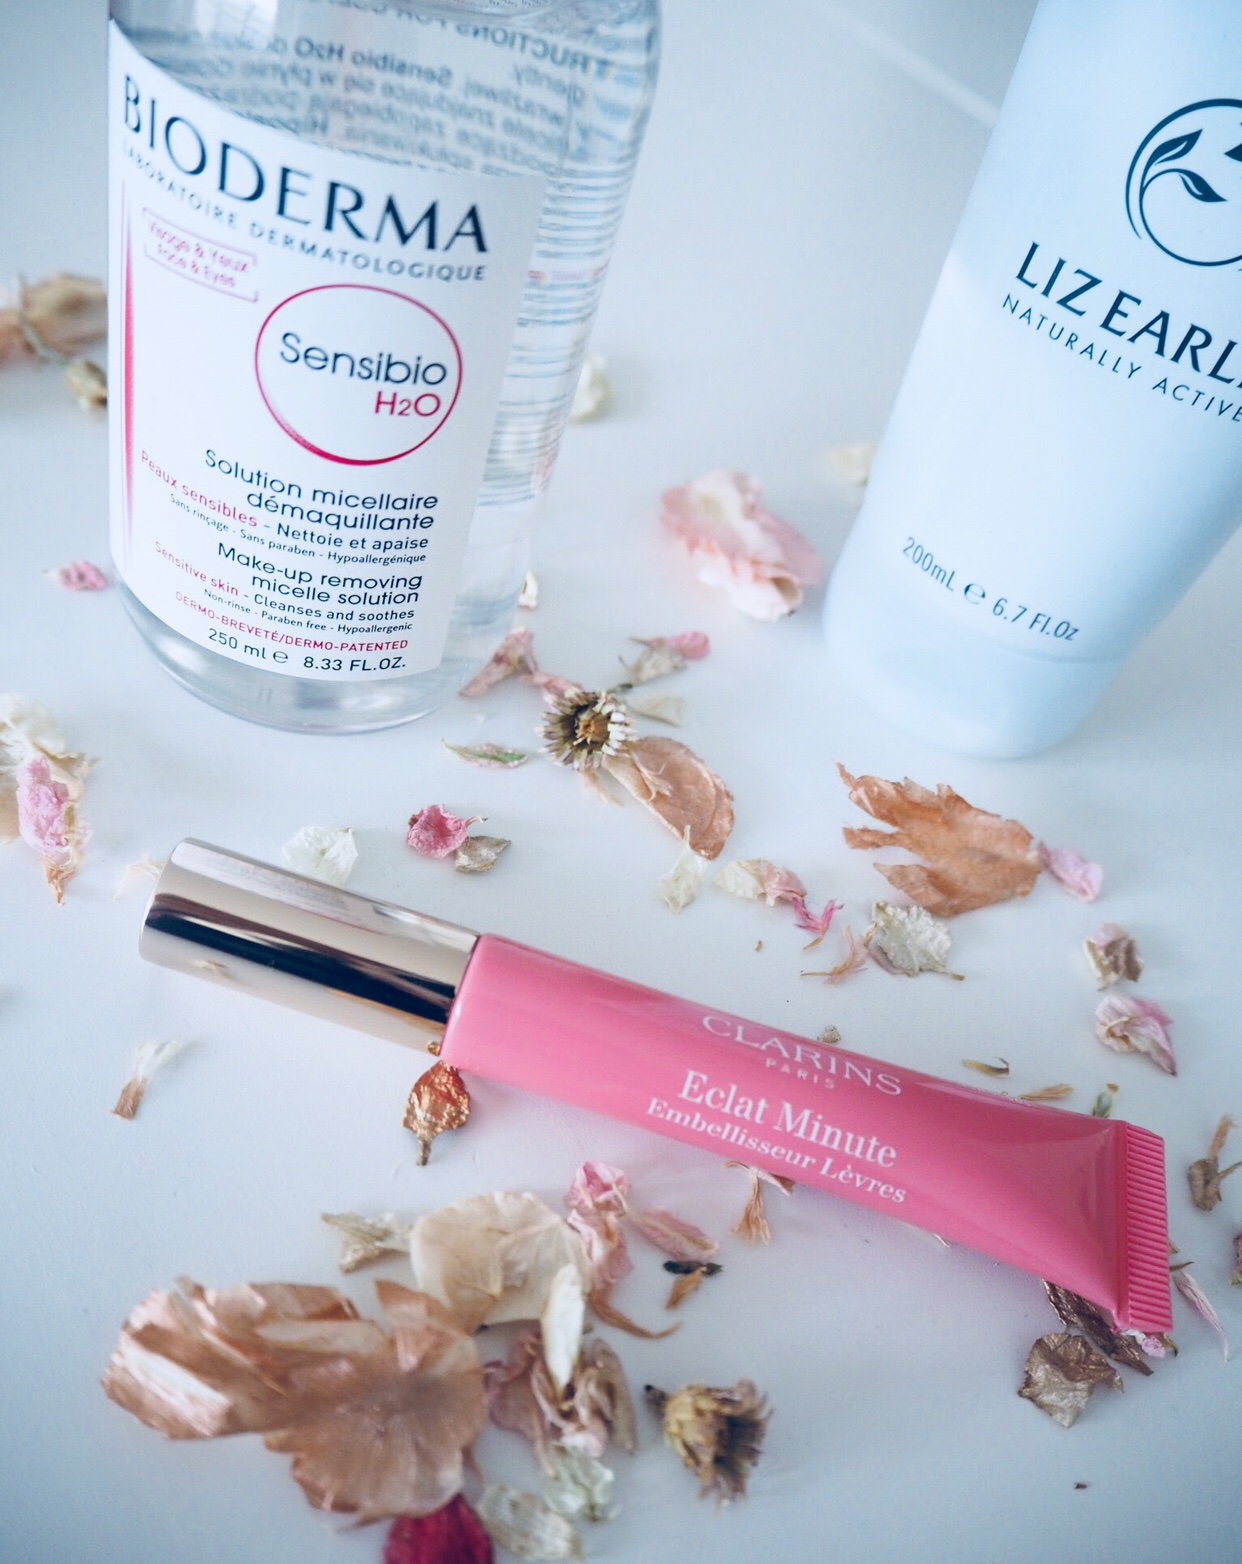 Things I Believe In This Week: Clarins, Bioderma & Liz Earle